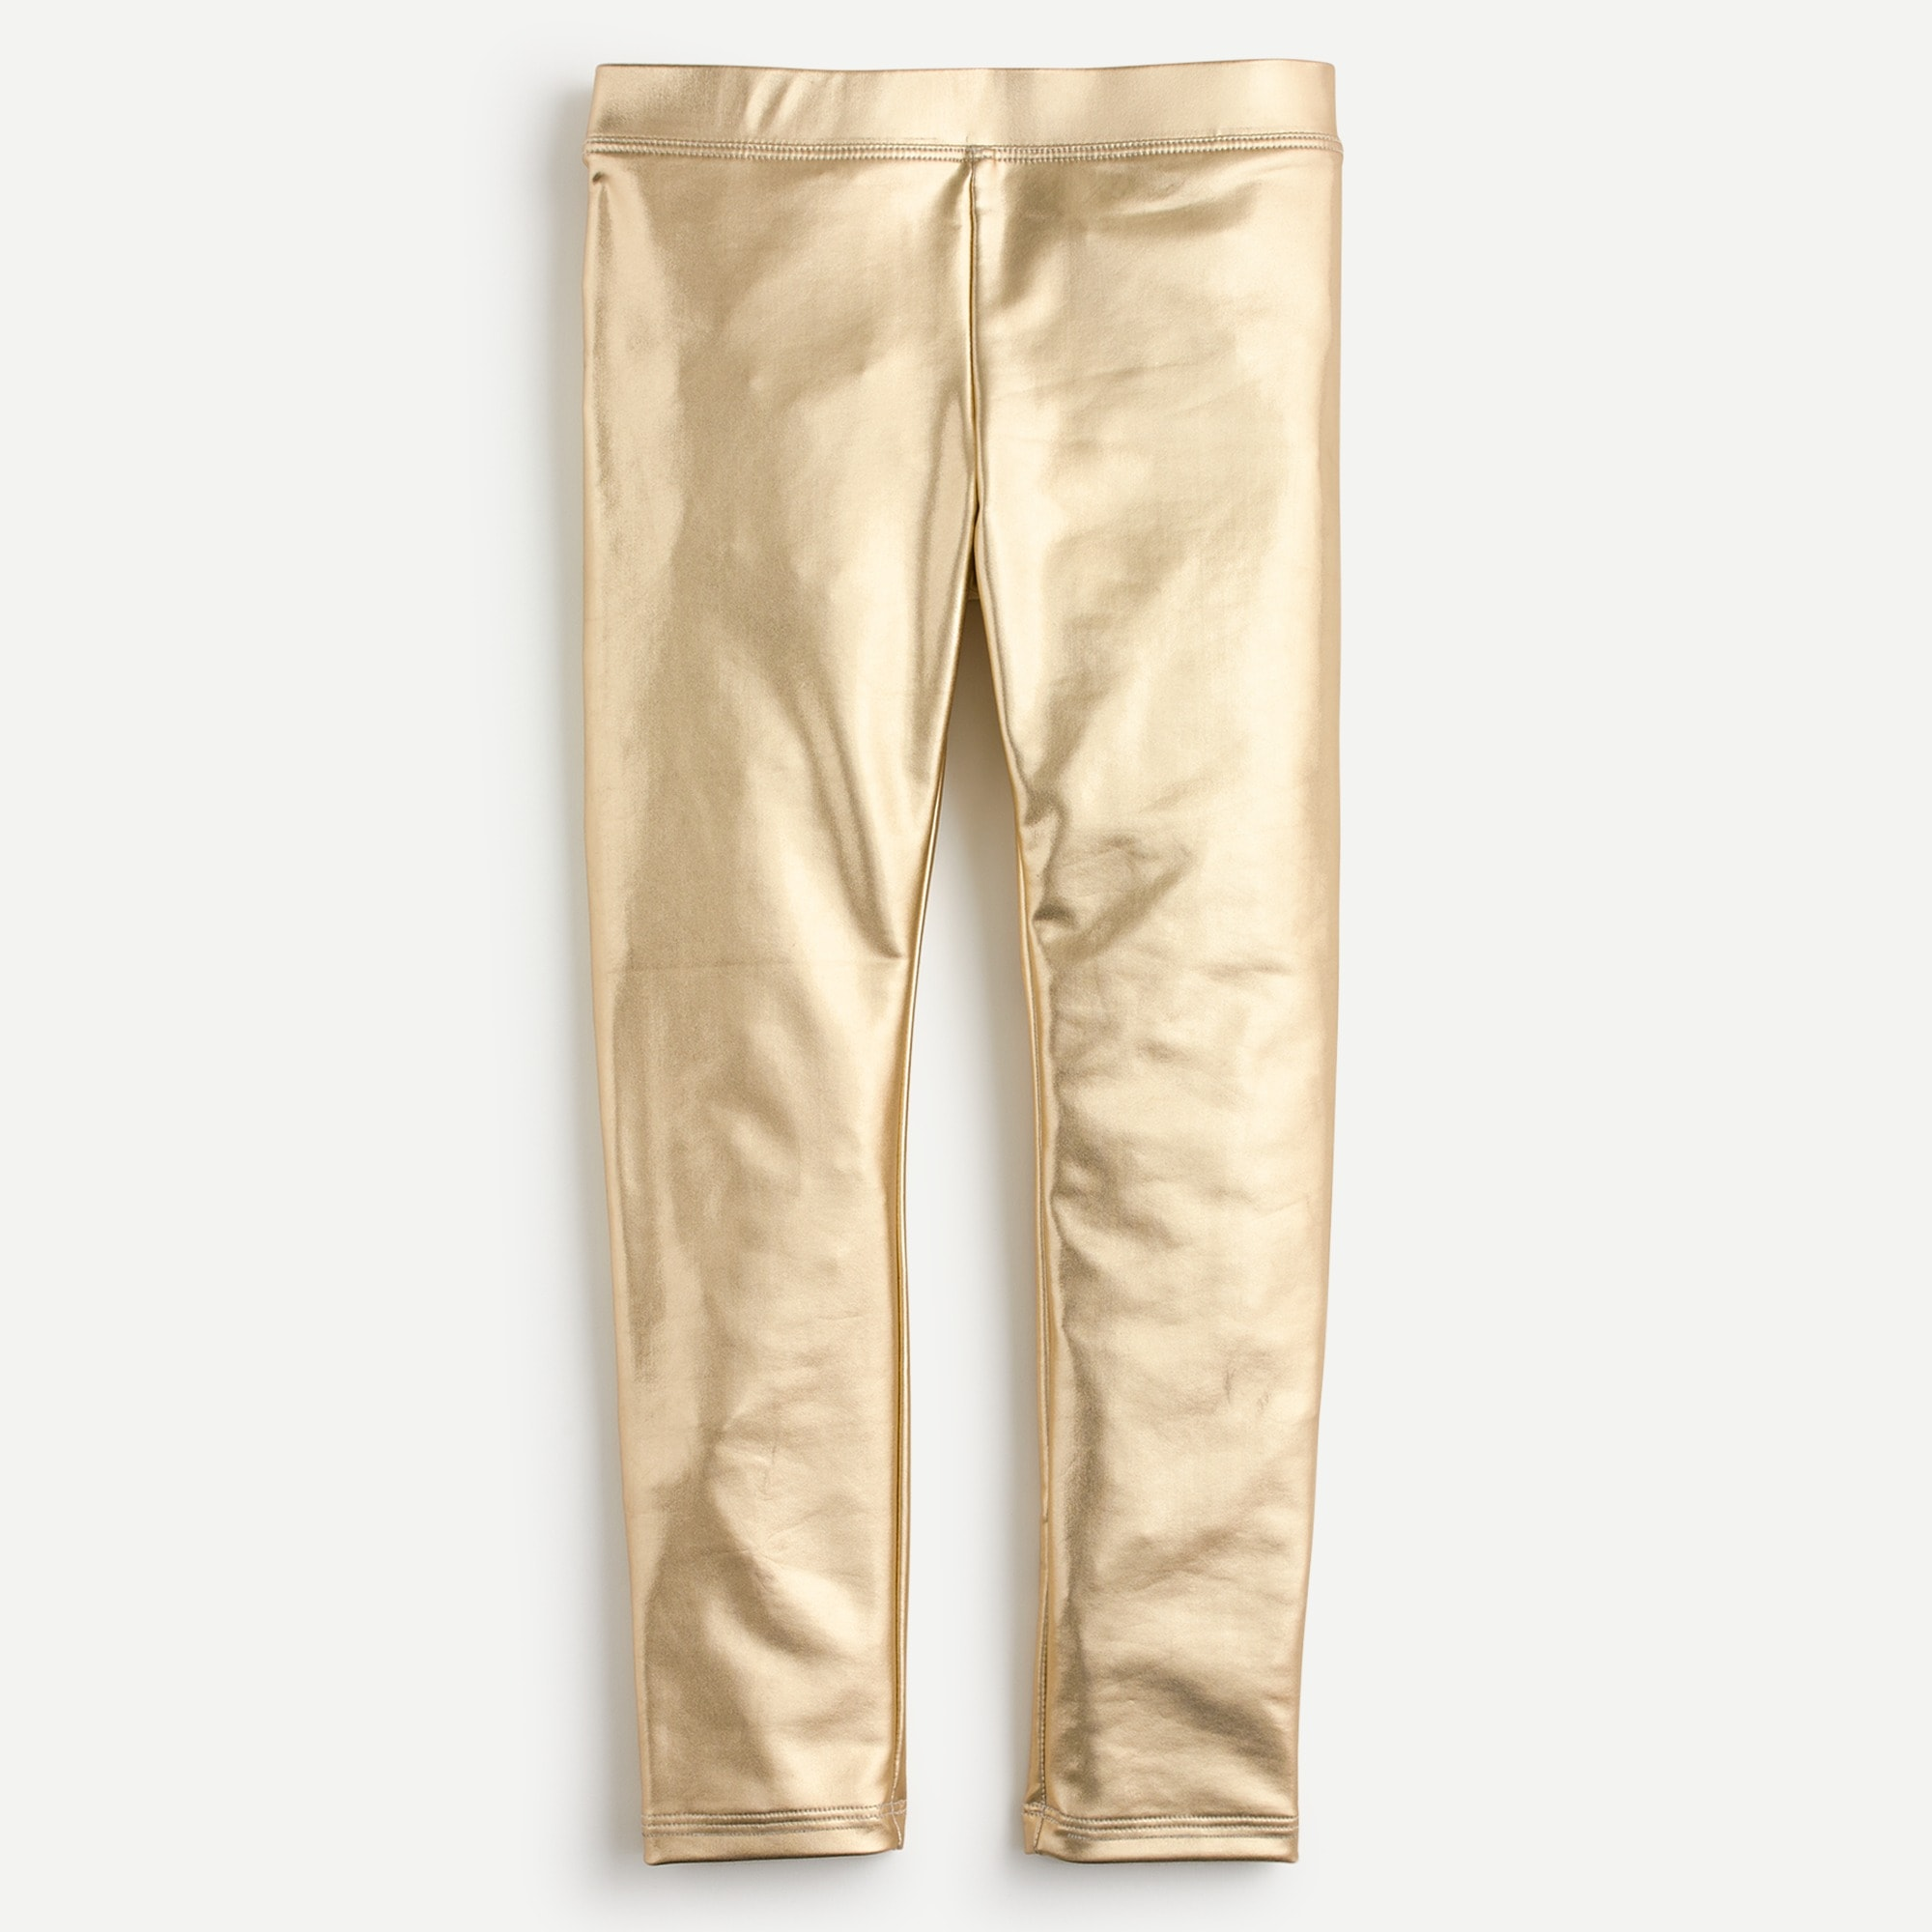 Girls' everyday leggings in metallic girl leggings c